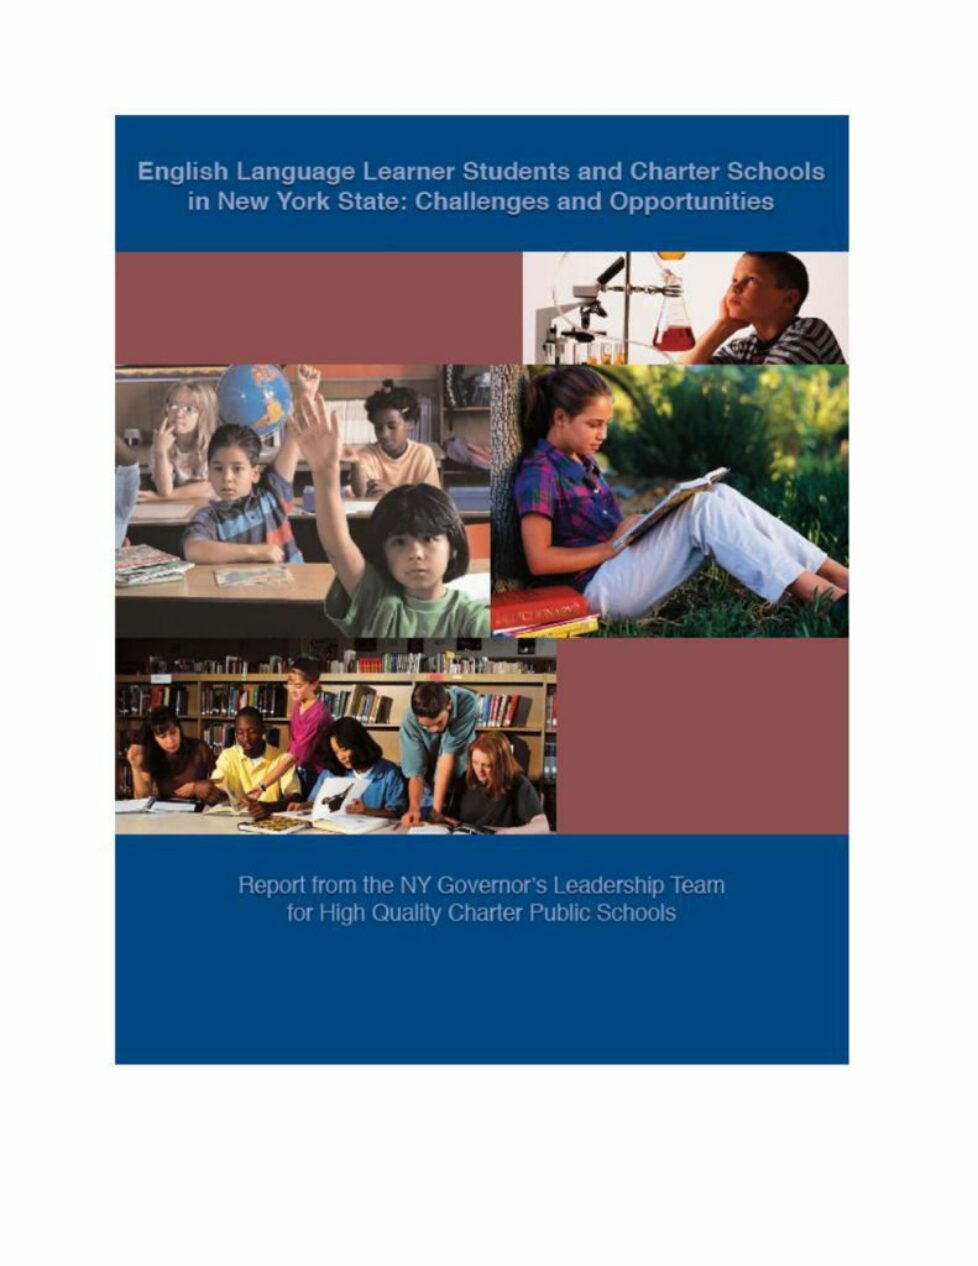 thumbnail of English Language Learner Students and Charter Schools in New York State: Challenges and Opportunities